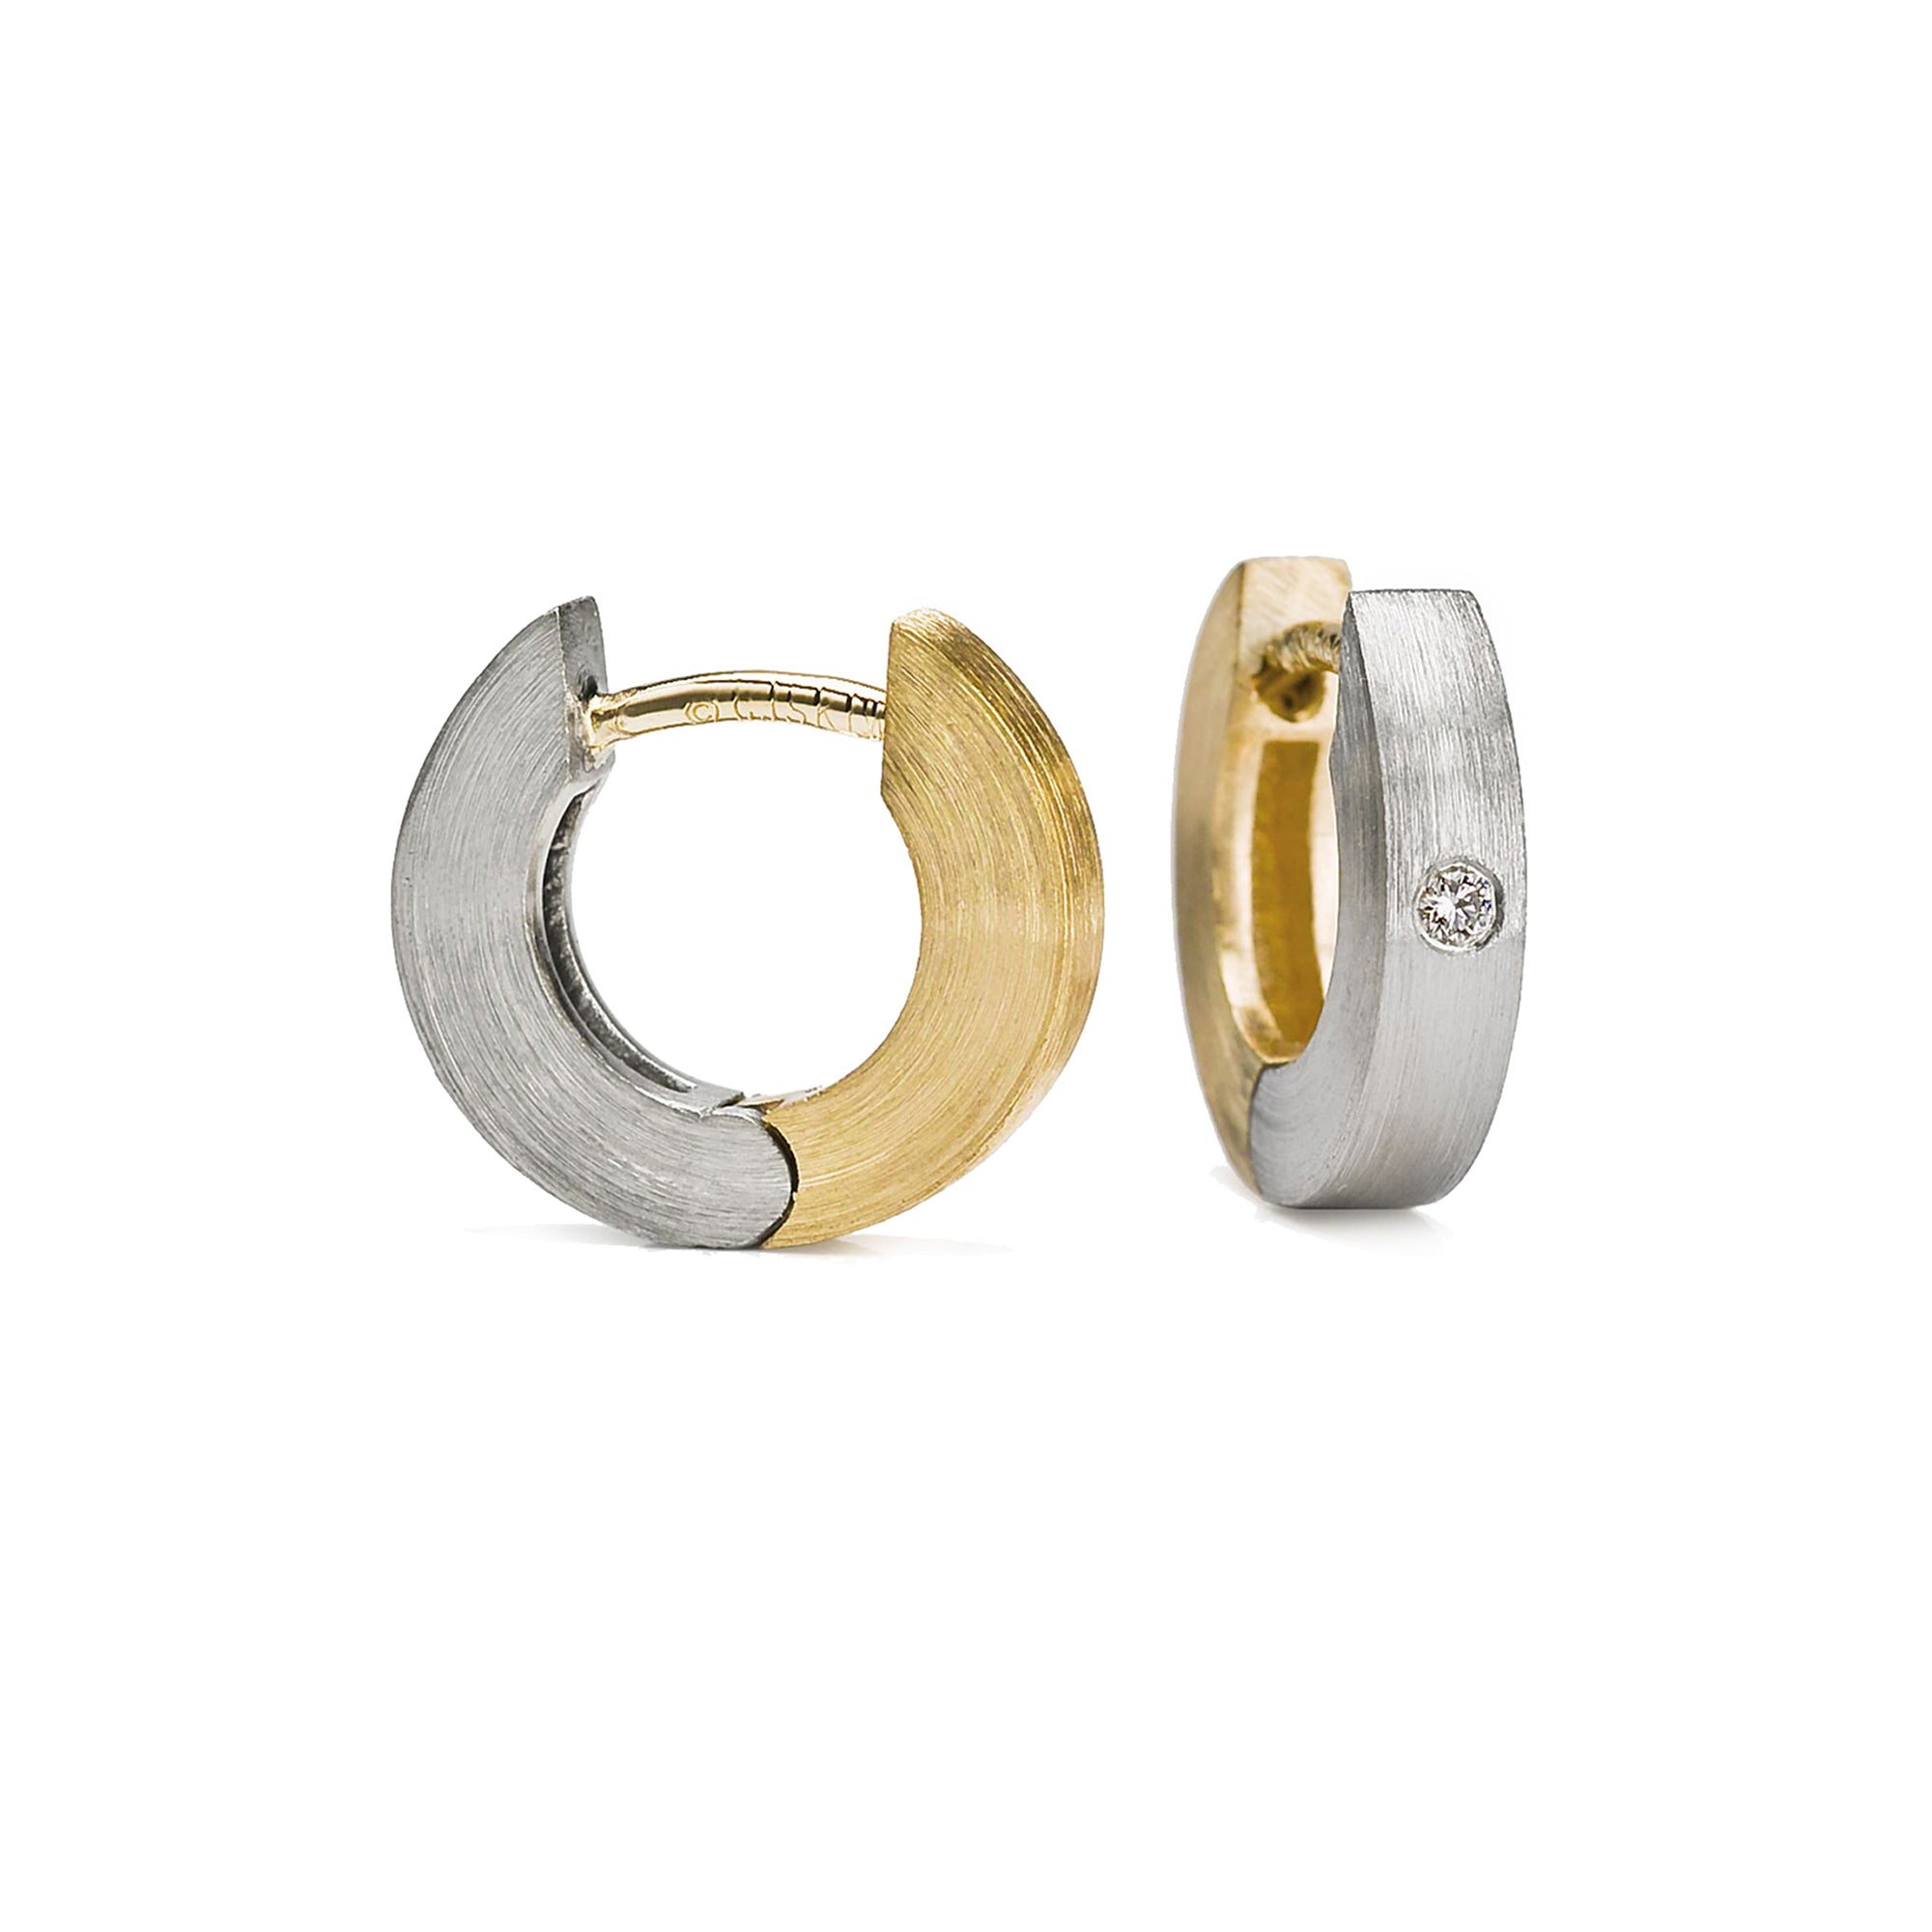 These flat profile hinged hoops earrings are 18k yellow gold and palladium with small burnish set white diamonds set in the palladium.